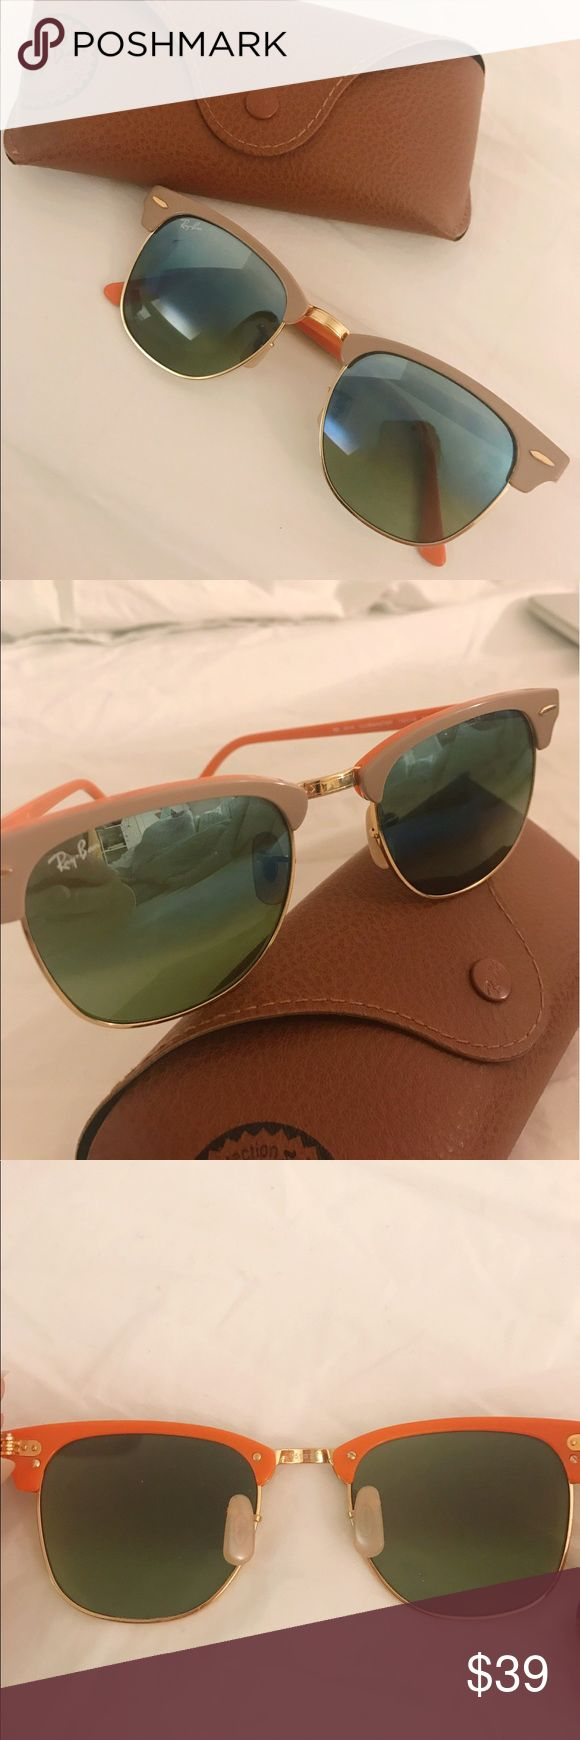 RAY-BAN clubmaster sunglasses in orange/tan Pre-owned. 100% authentic. In mint condition. The color is amazing, than from the outside and orange in the inside with gold hardware. Comes with the original ray ban cover in brown leather shown in picture. P.s.: you may need to adjust the note pads but it can be done easily! Ray-Ban Accessories Sunglasses